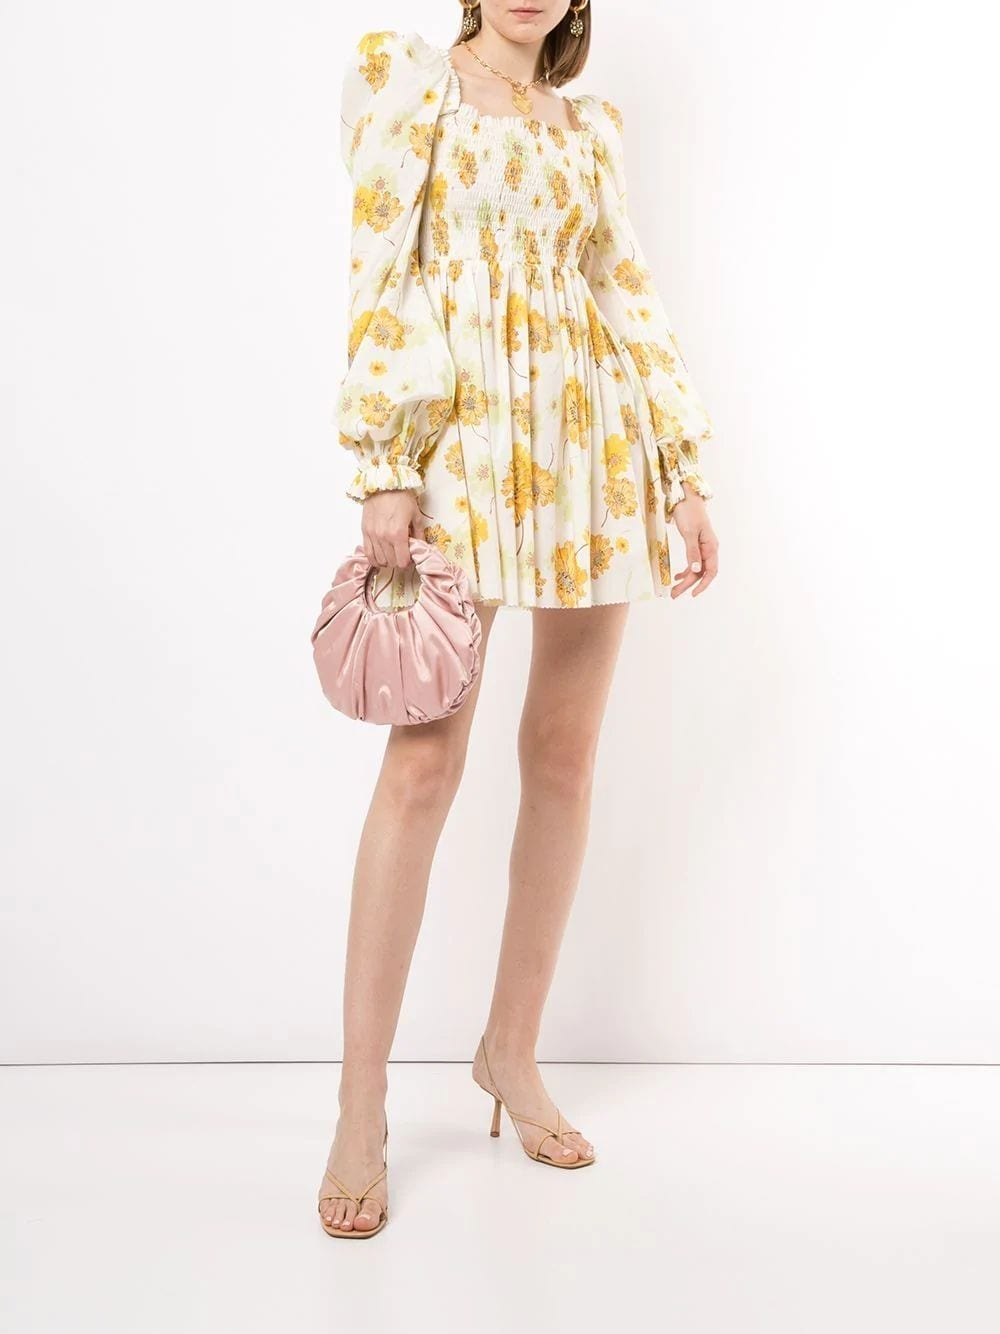 THE VAMPIRE'S WIFE Yellow Floral Print Dress